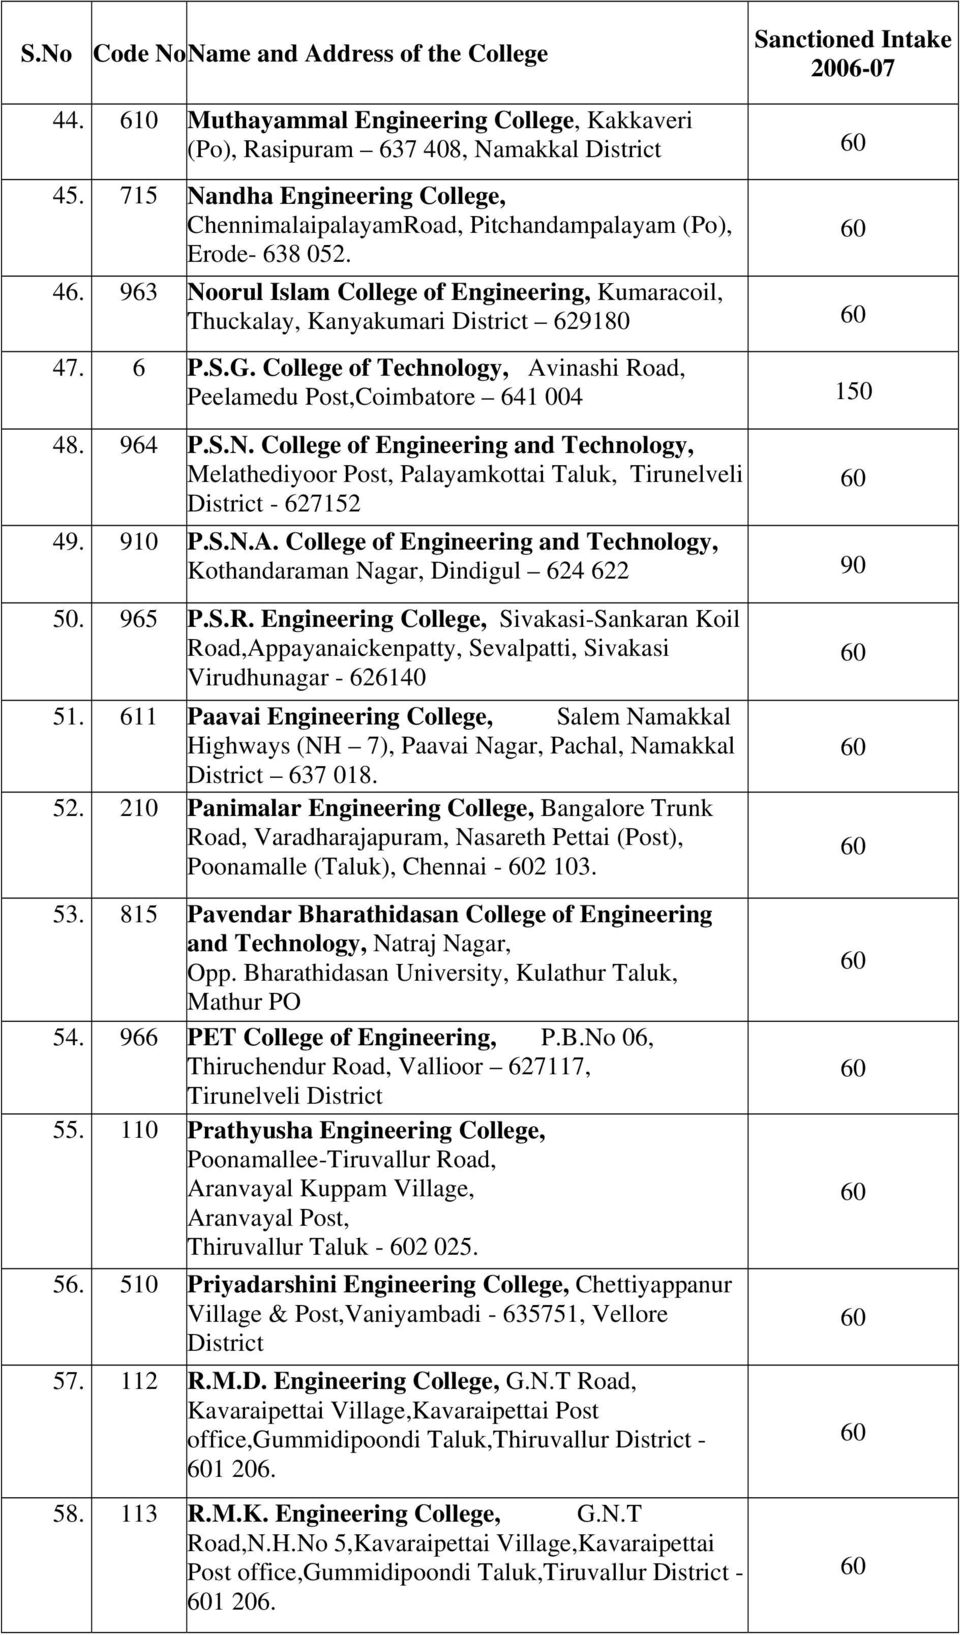 910 P.S.N.A. College of Engineering and Technology, Kothandaraman Nagar, Dindigul 624 622 90 50. 965 P.S.R.